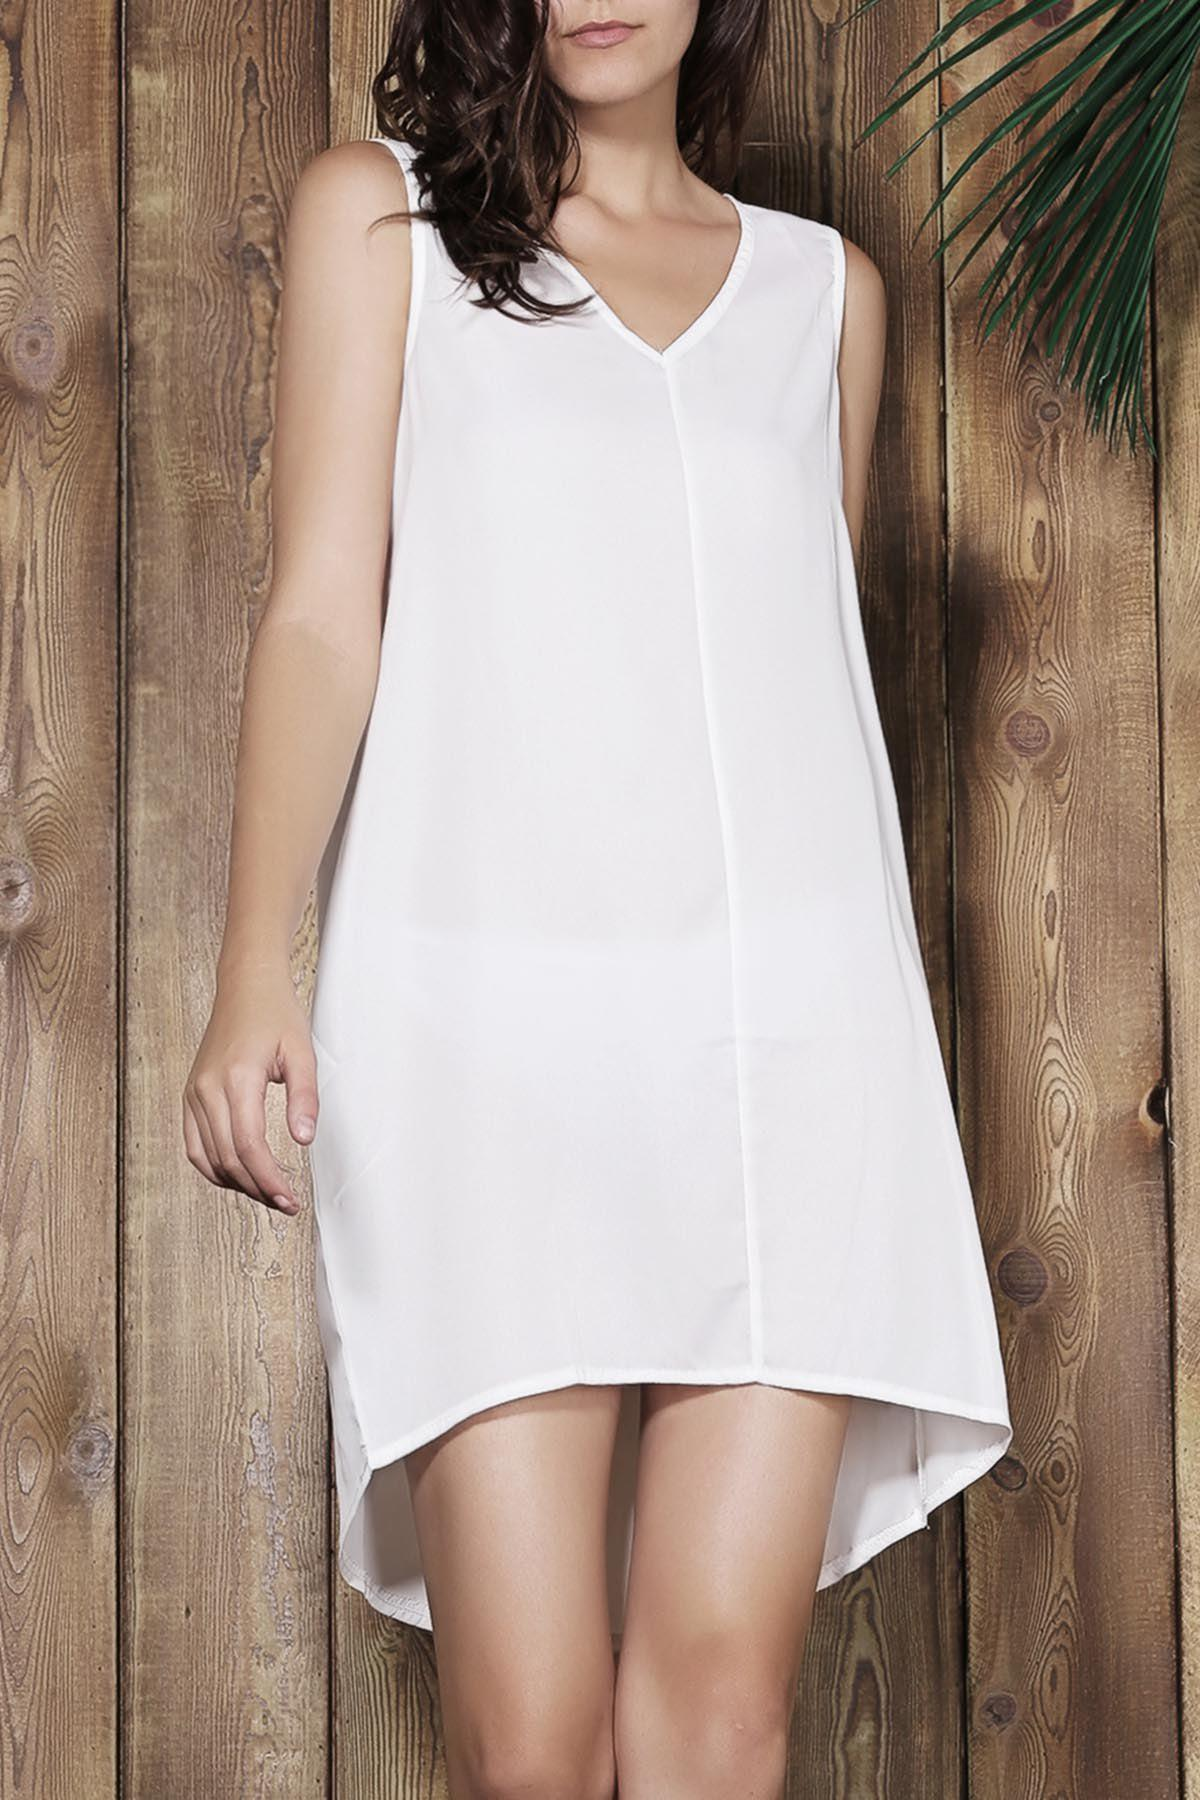 Simple Sleeveless V-Neck Loose-Fitting Women's White Dress - OFF WHITE S